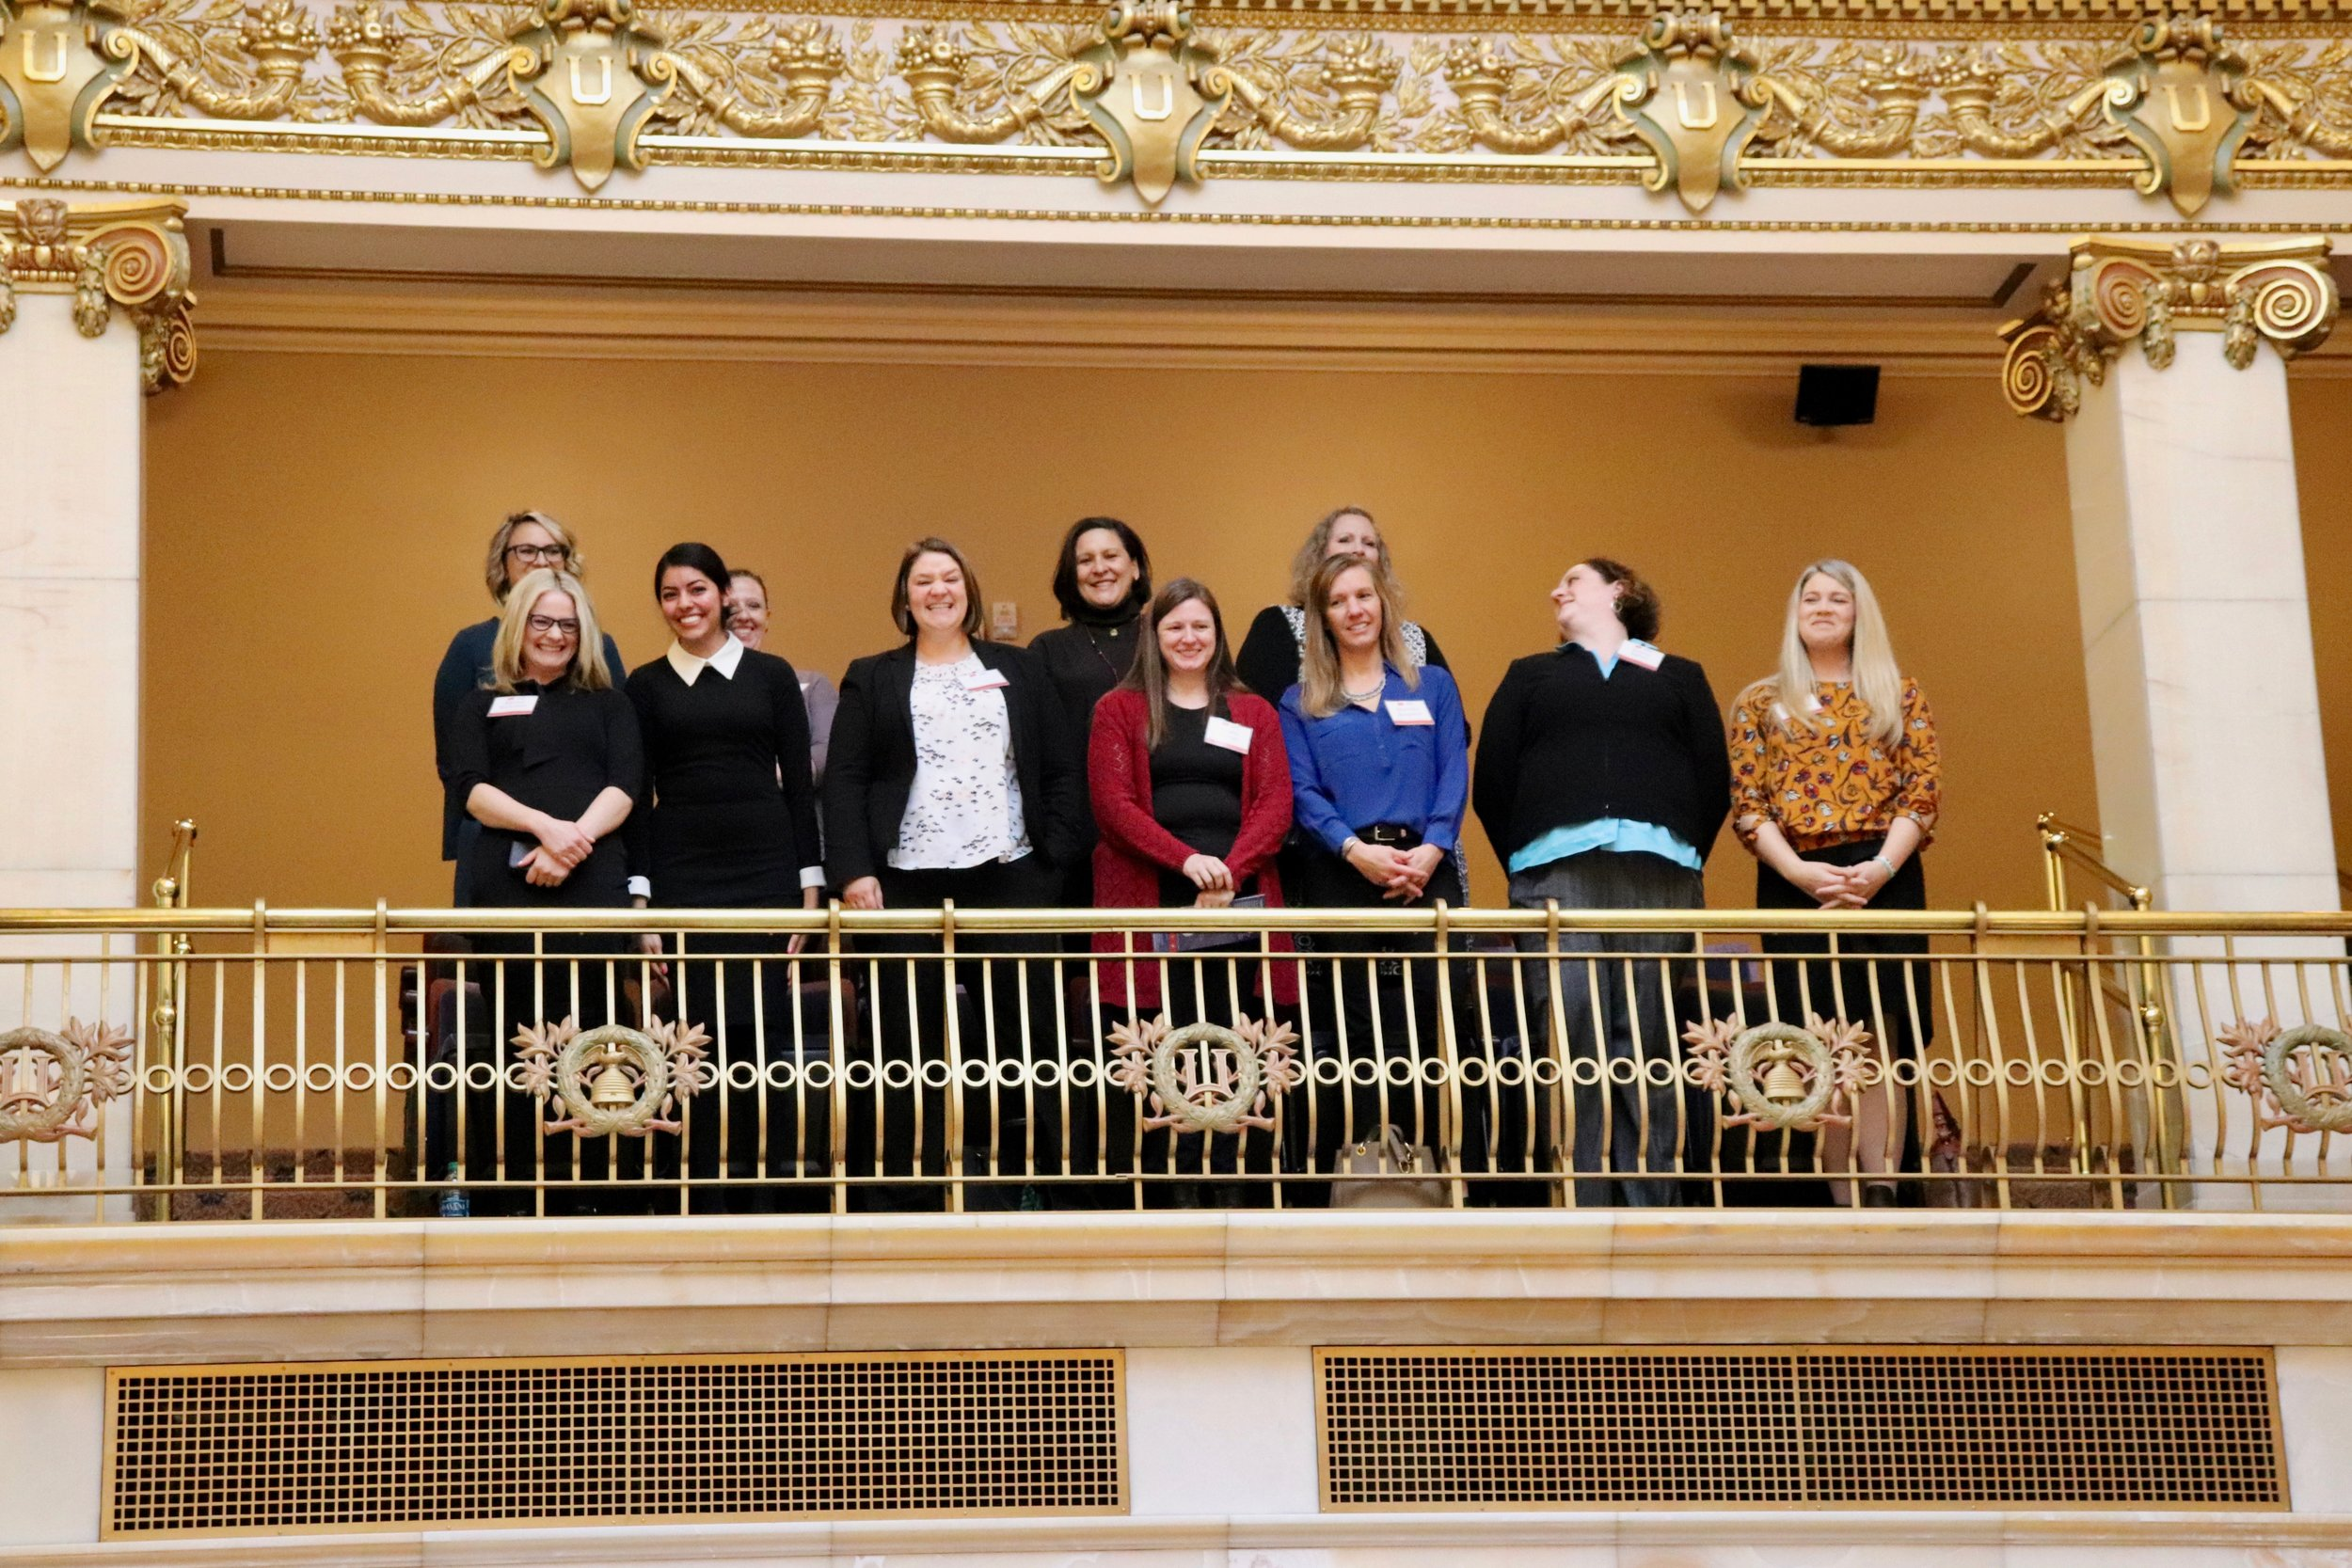 Graduates of the Political Development Series in the gallery.